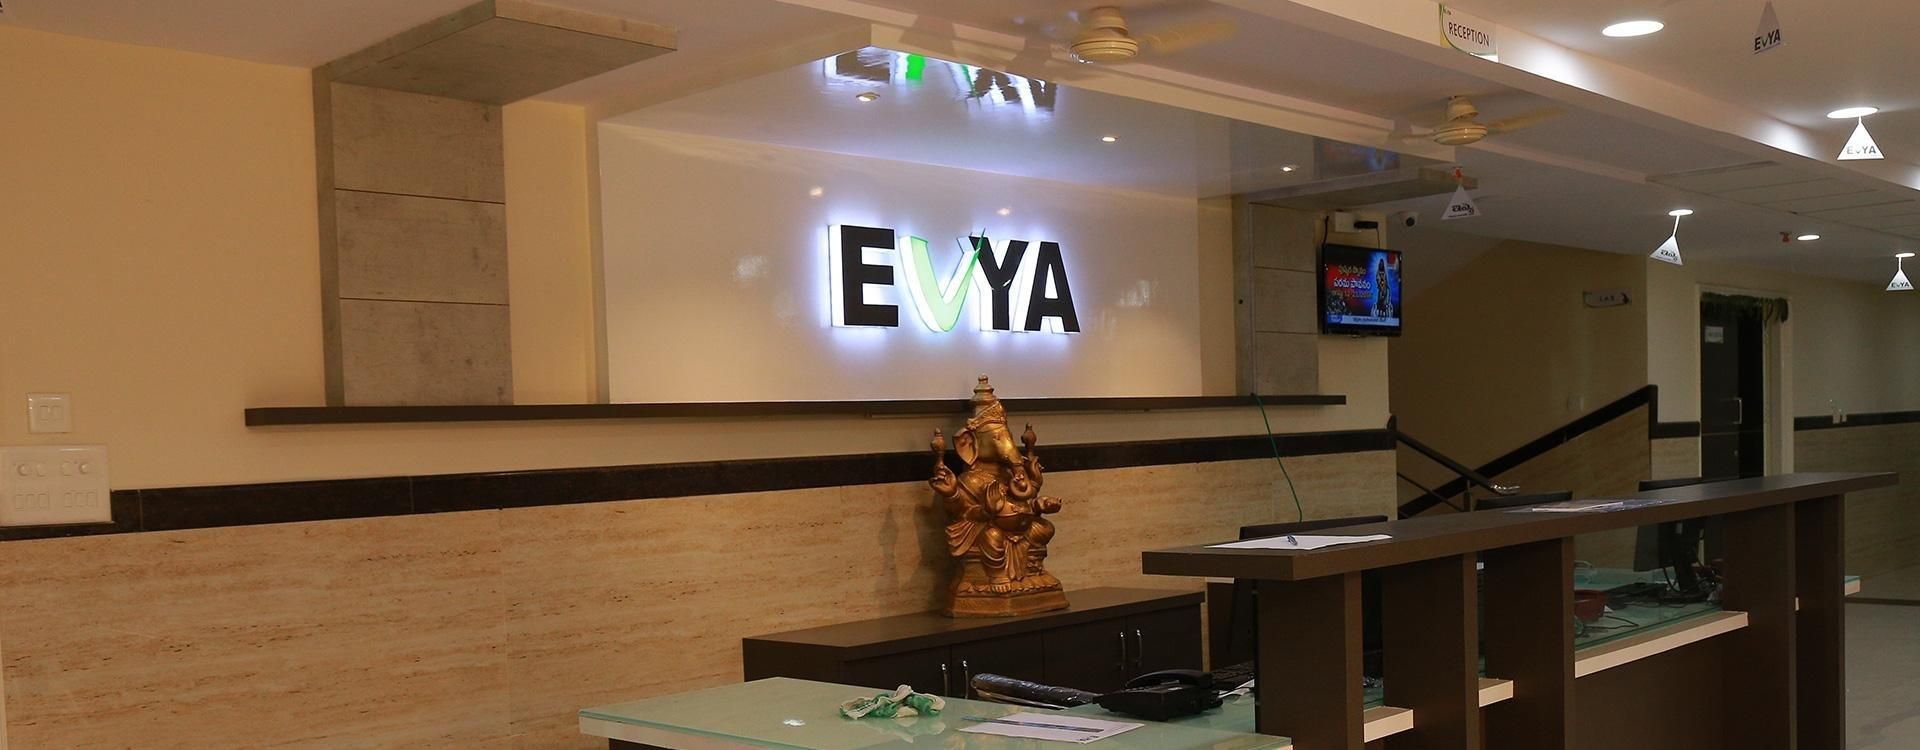 Evya Hospitals And Diabetic Research Center